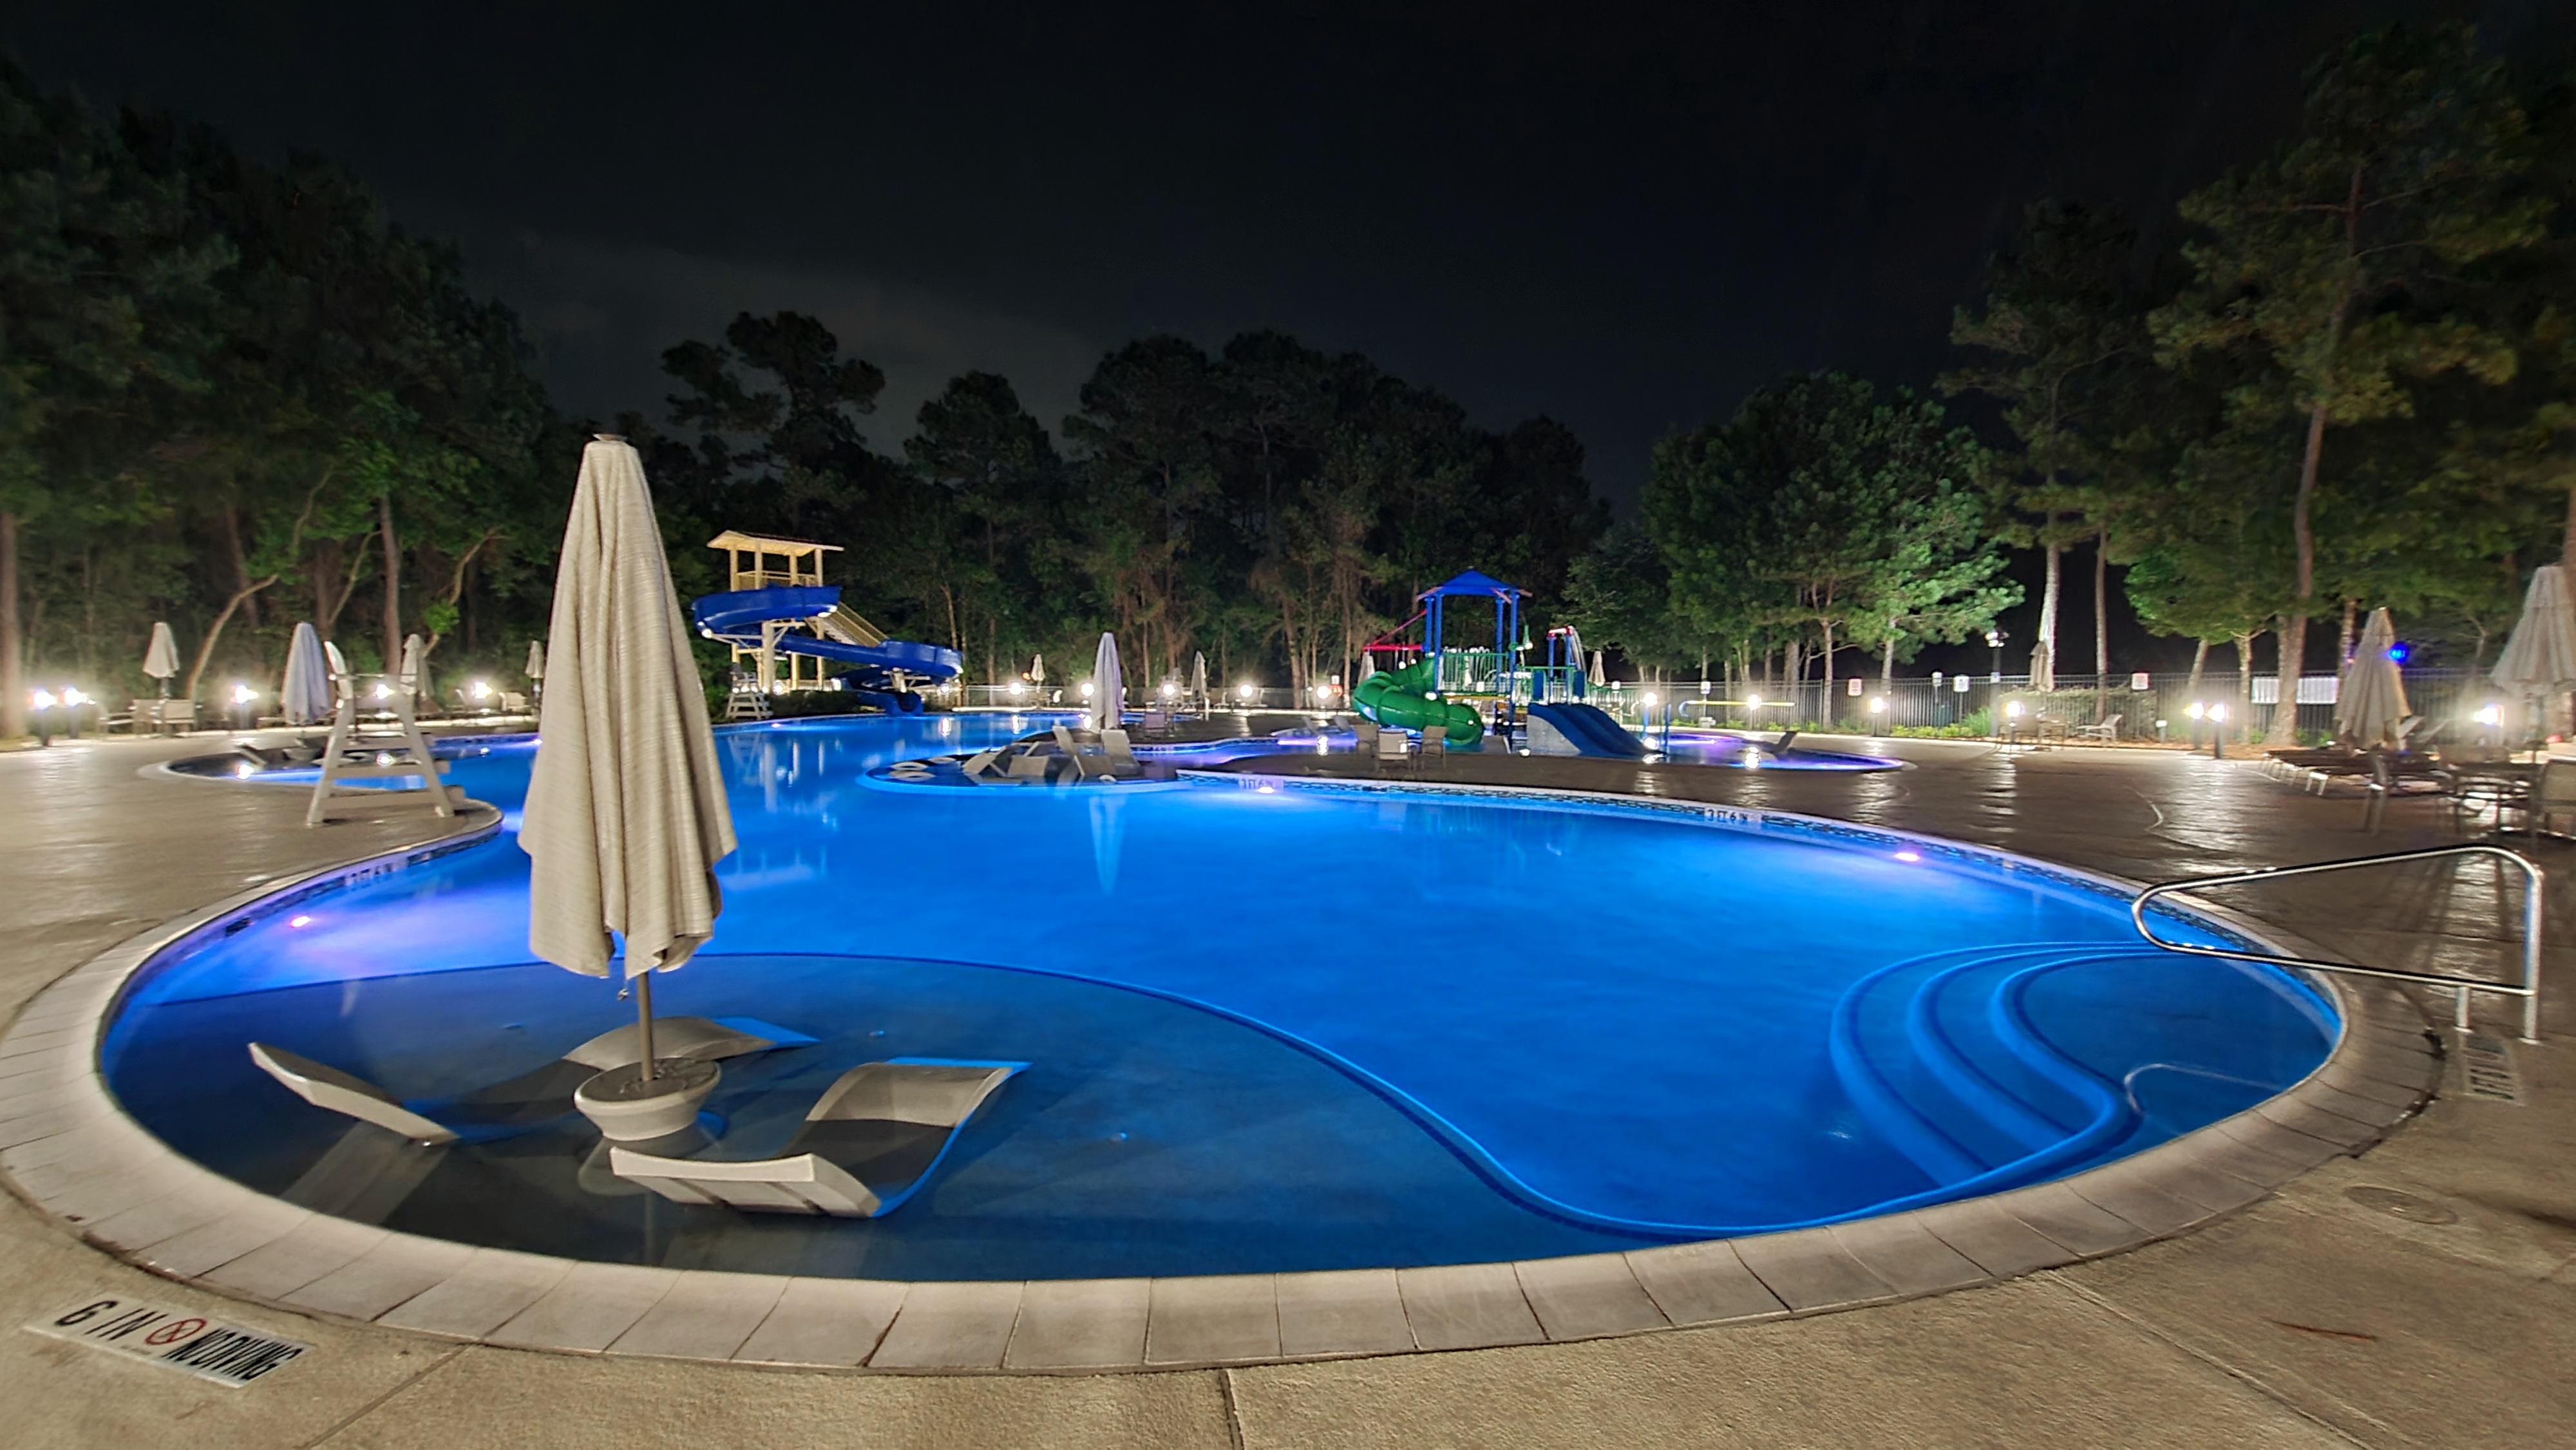 Resort-style pool at night with color changing LED pool lights thumbnail